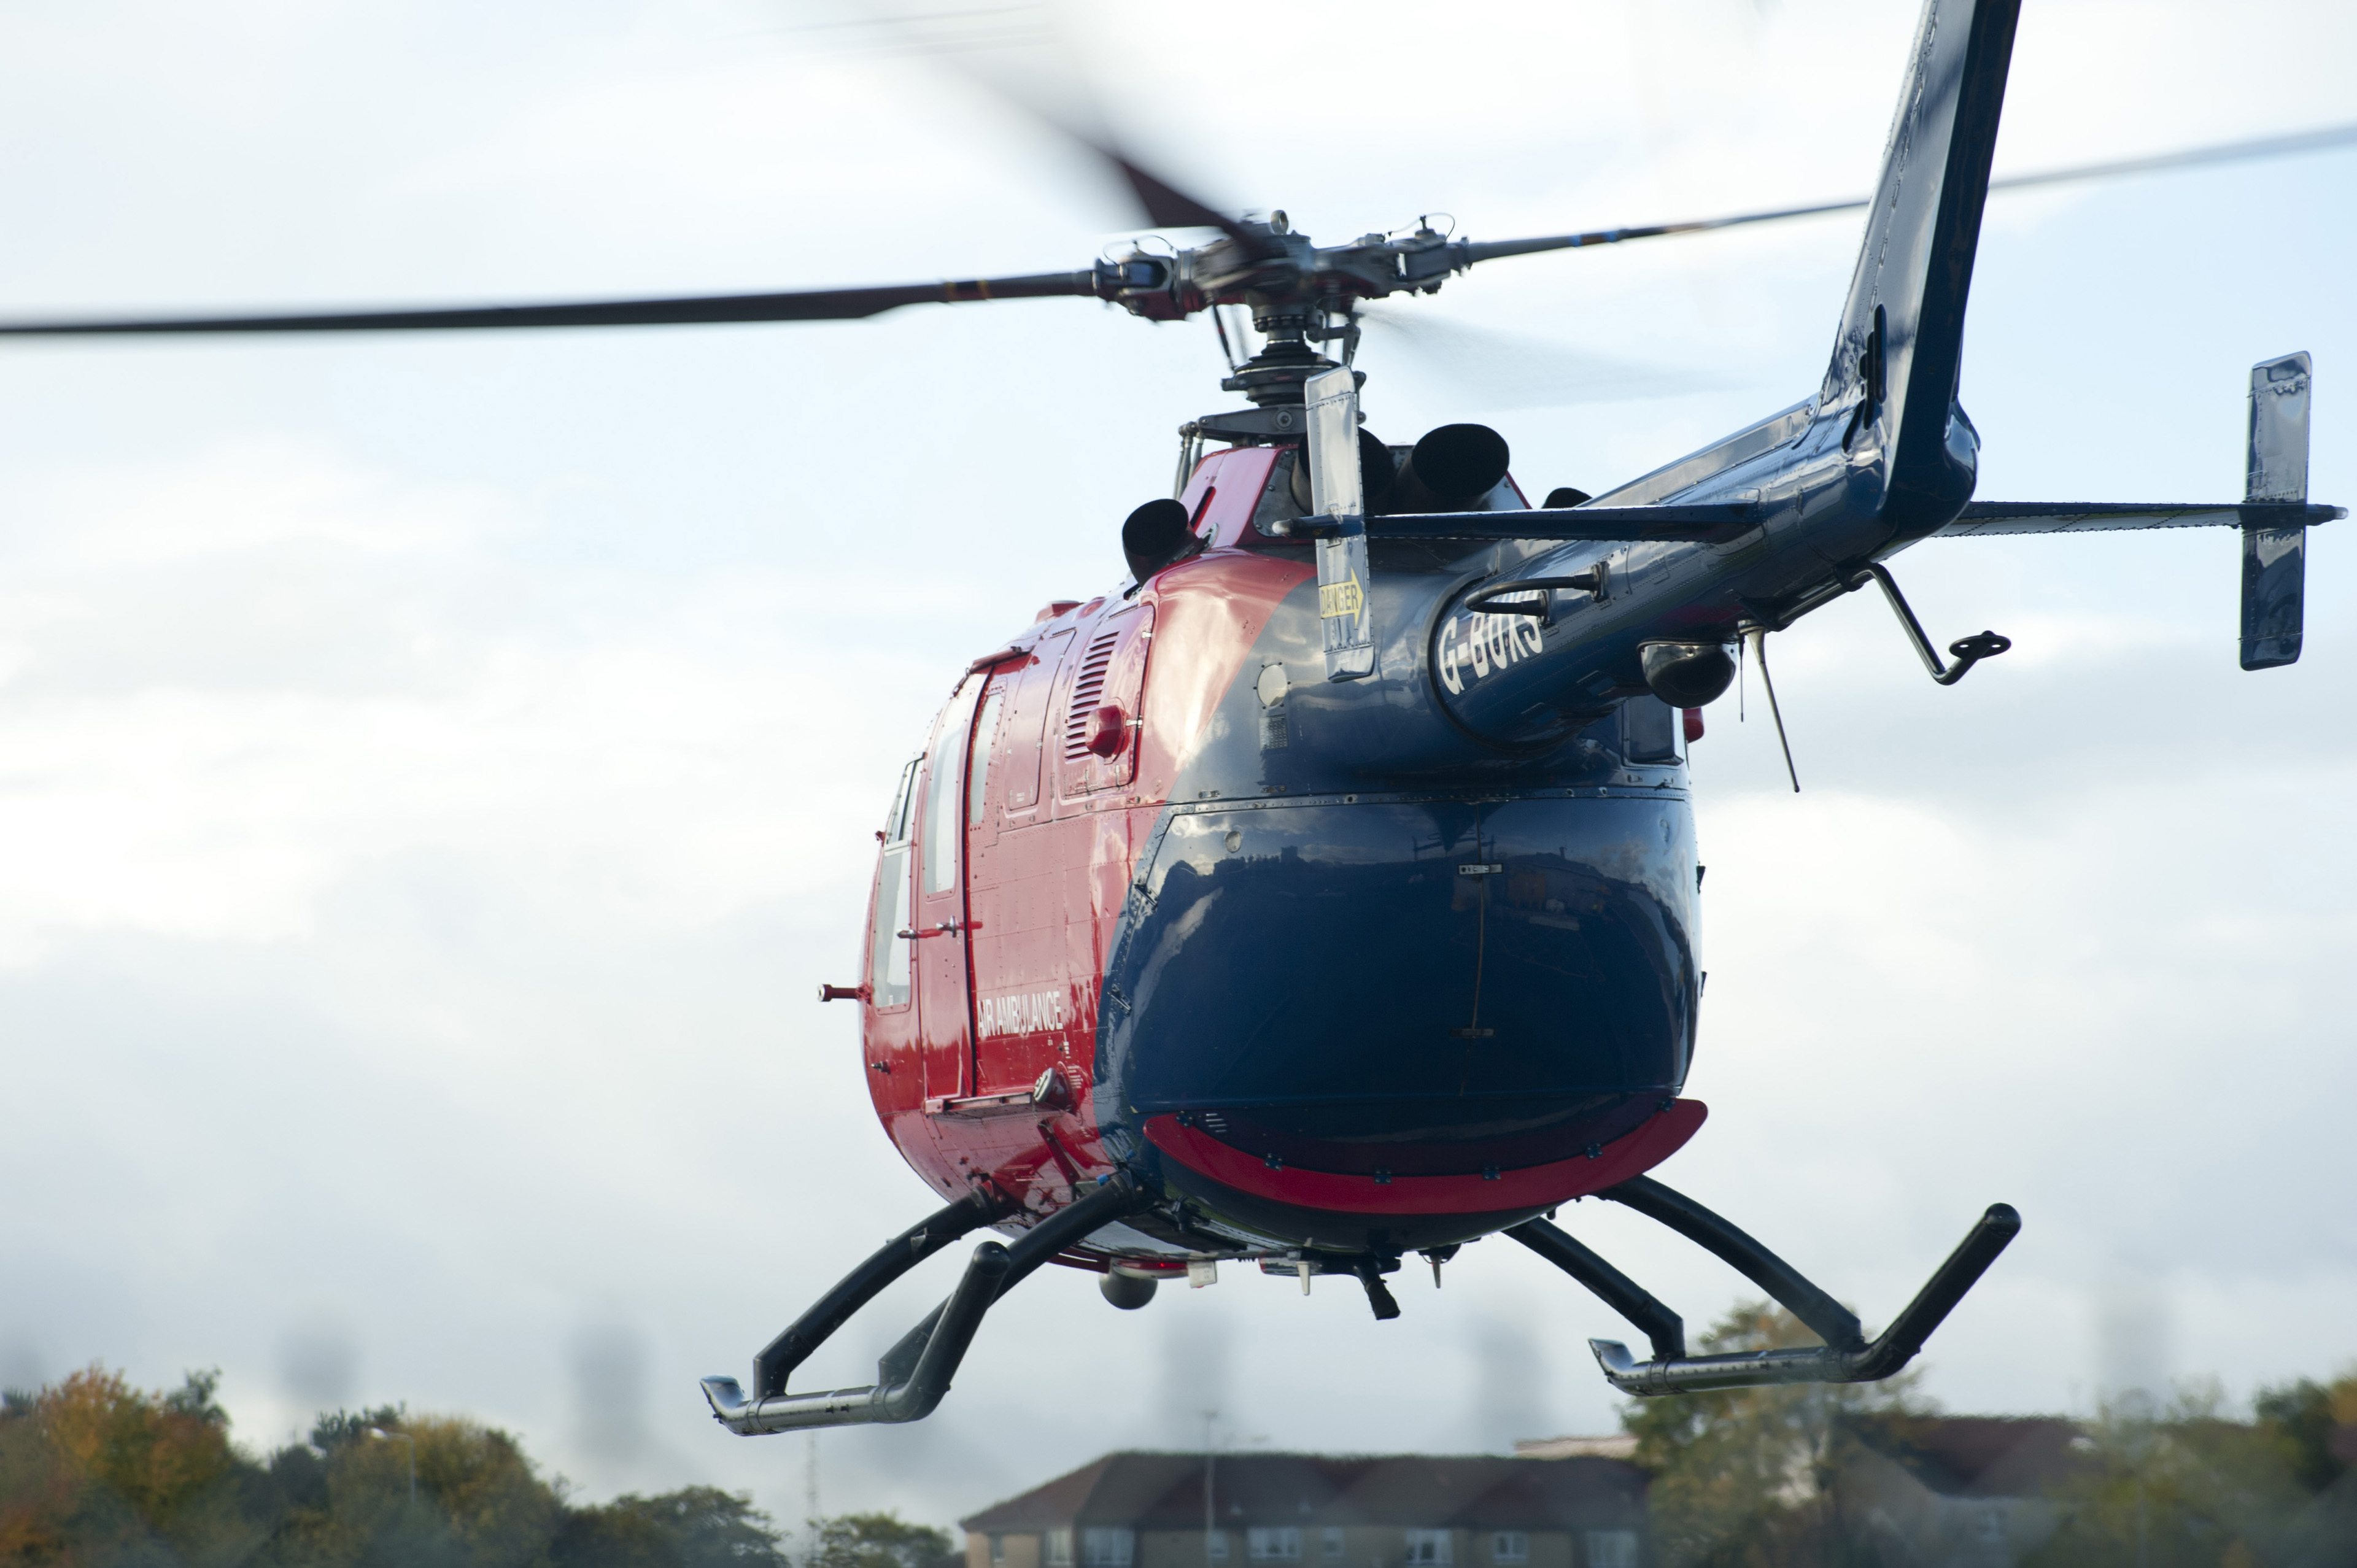 Red Helicopter Hovering with Blurred Rotating Blades as seen from Behind